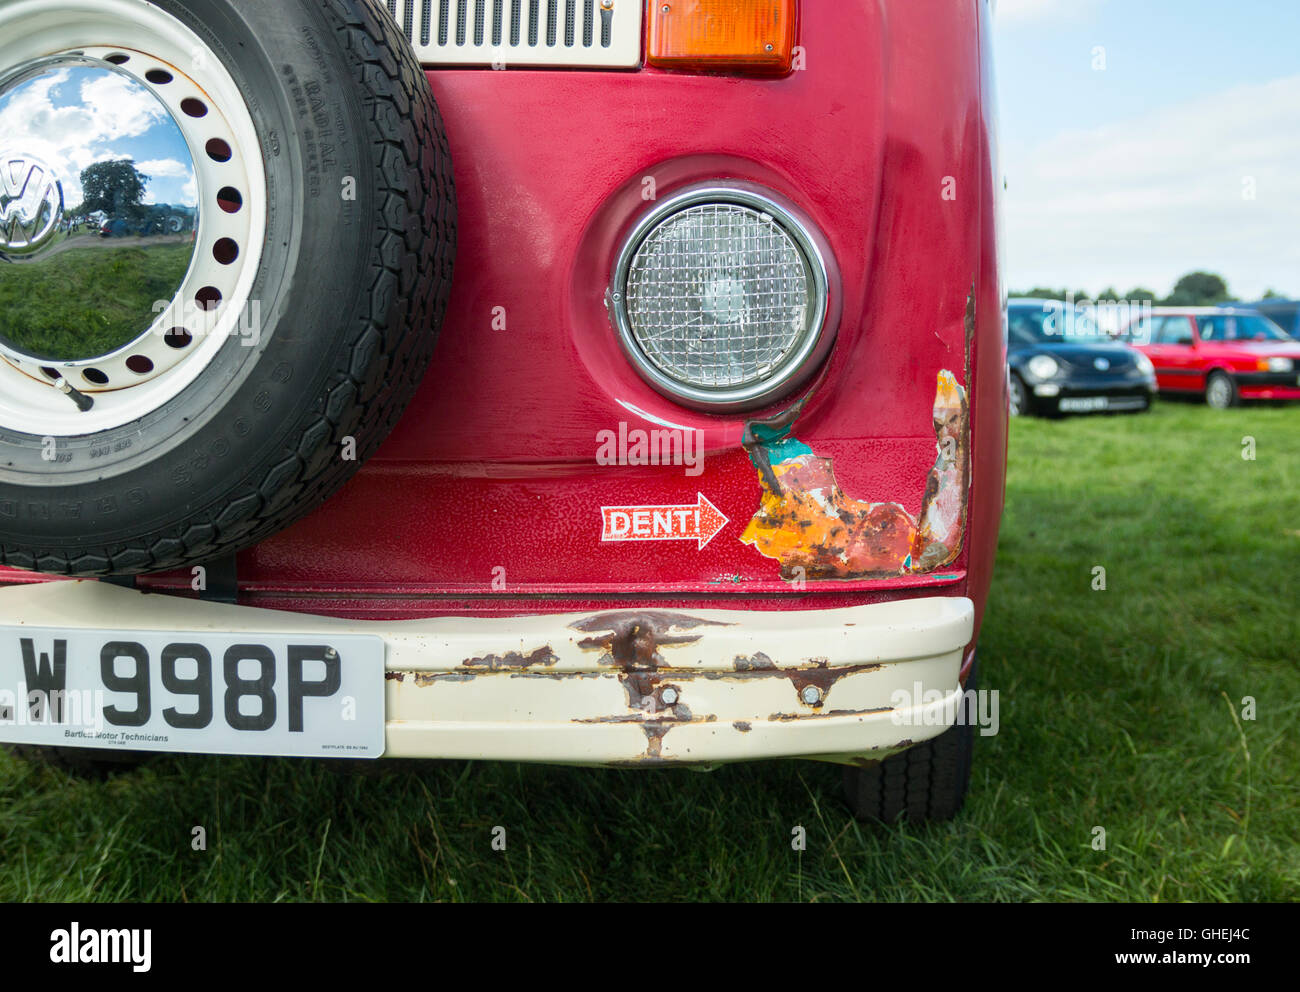 Camper Sticker Stock Photos Camper Sticker Stock Images Alamy